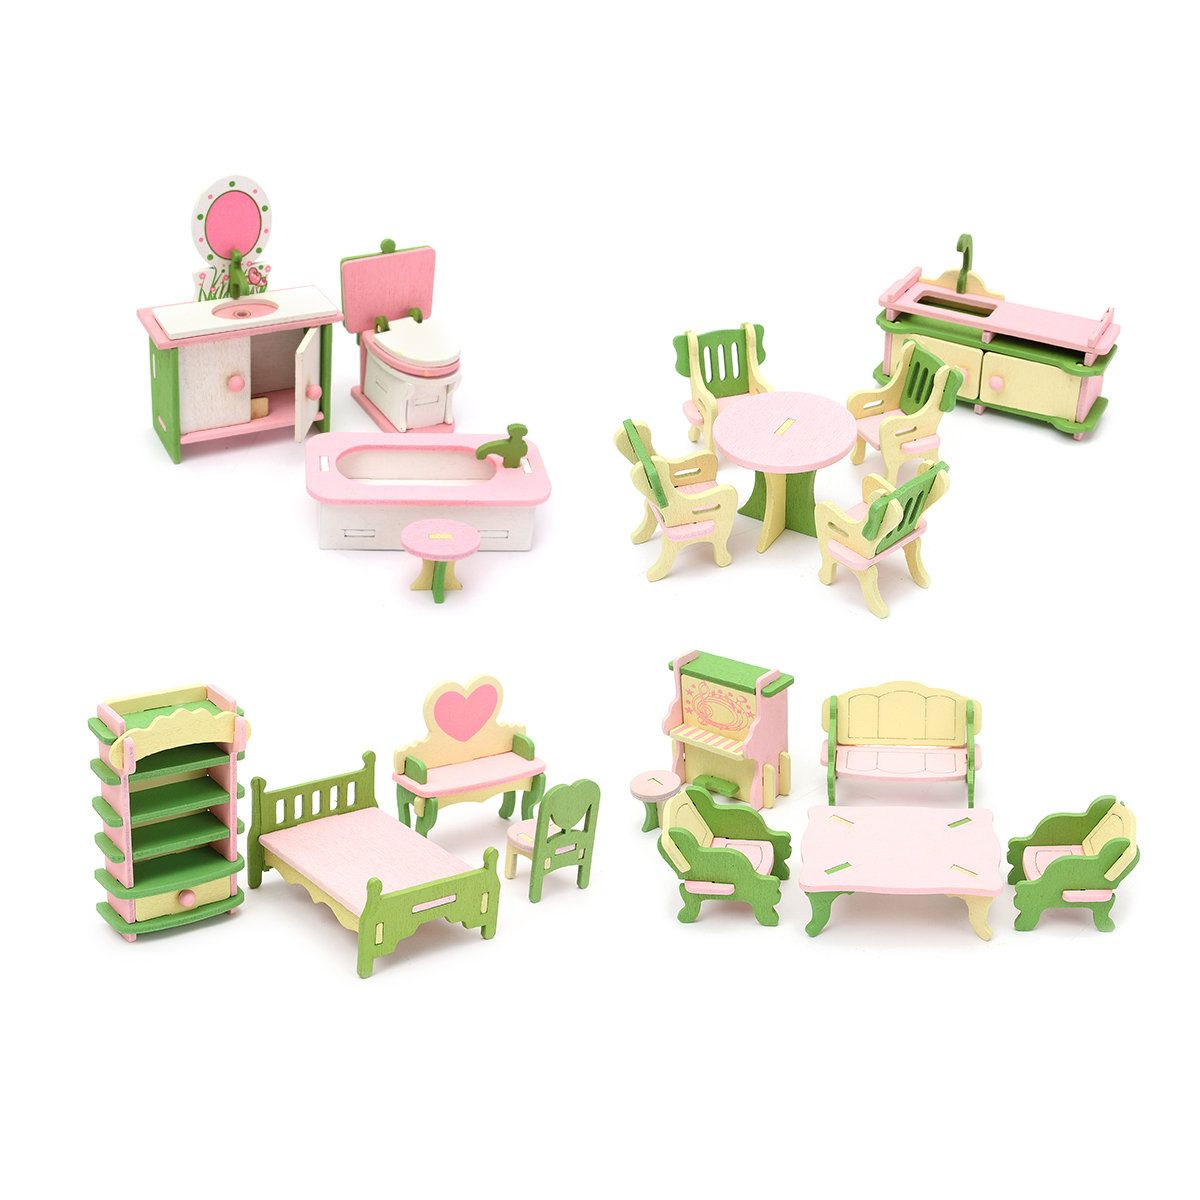 doll house furniture sets. Explore Dollhouse Furniture Sets And More! Doll House